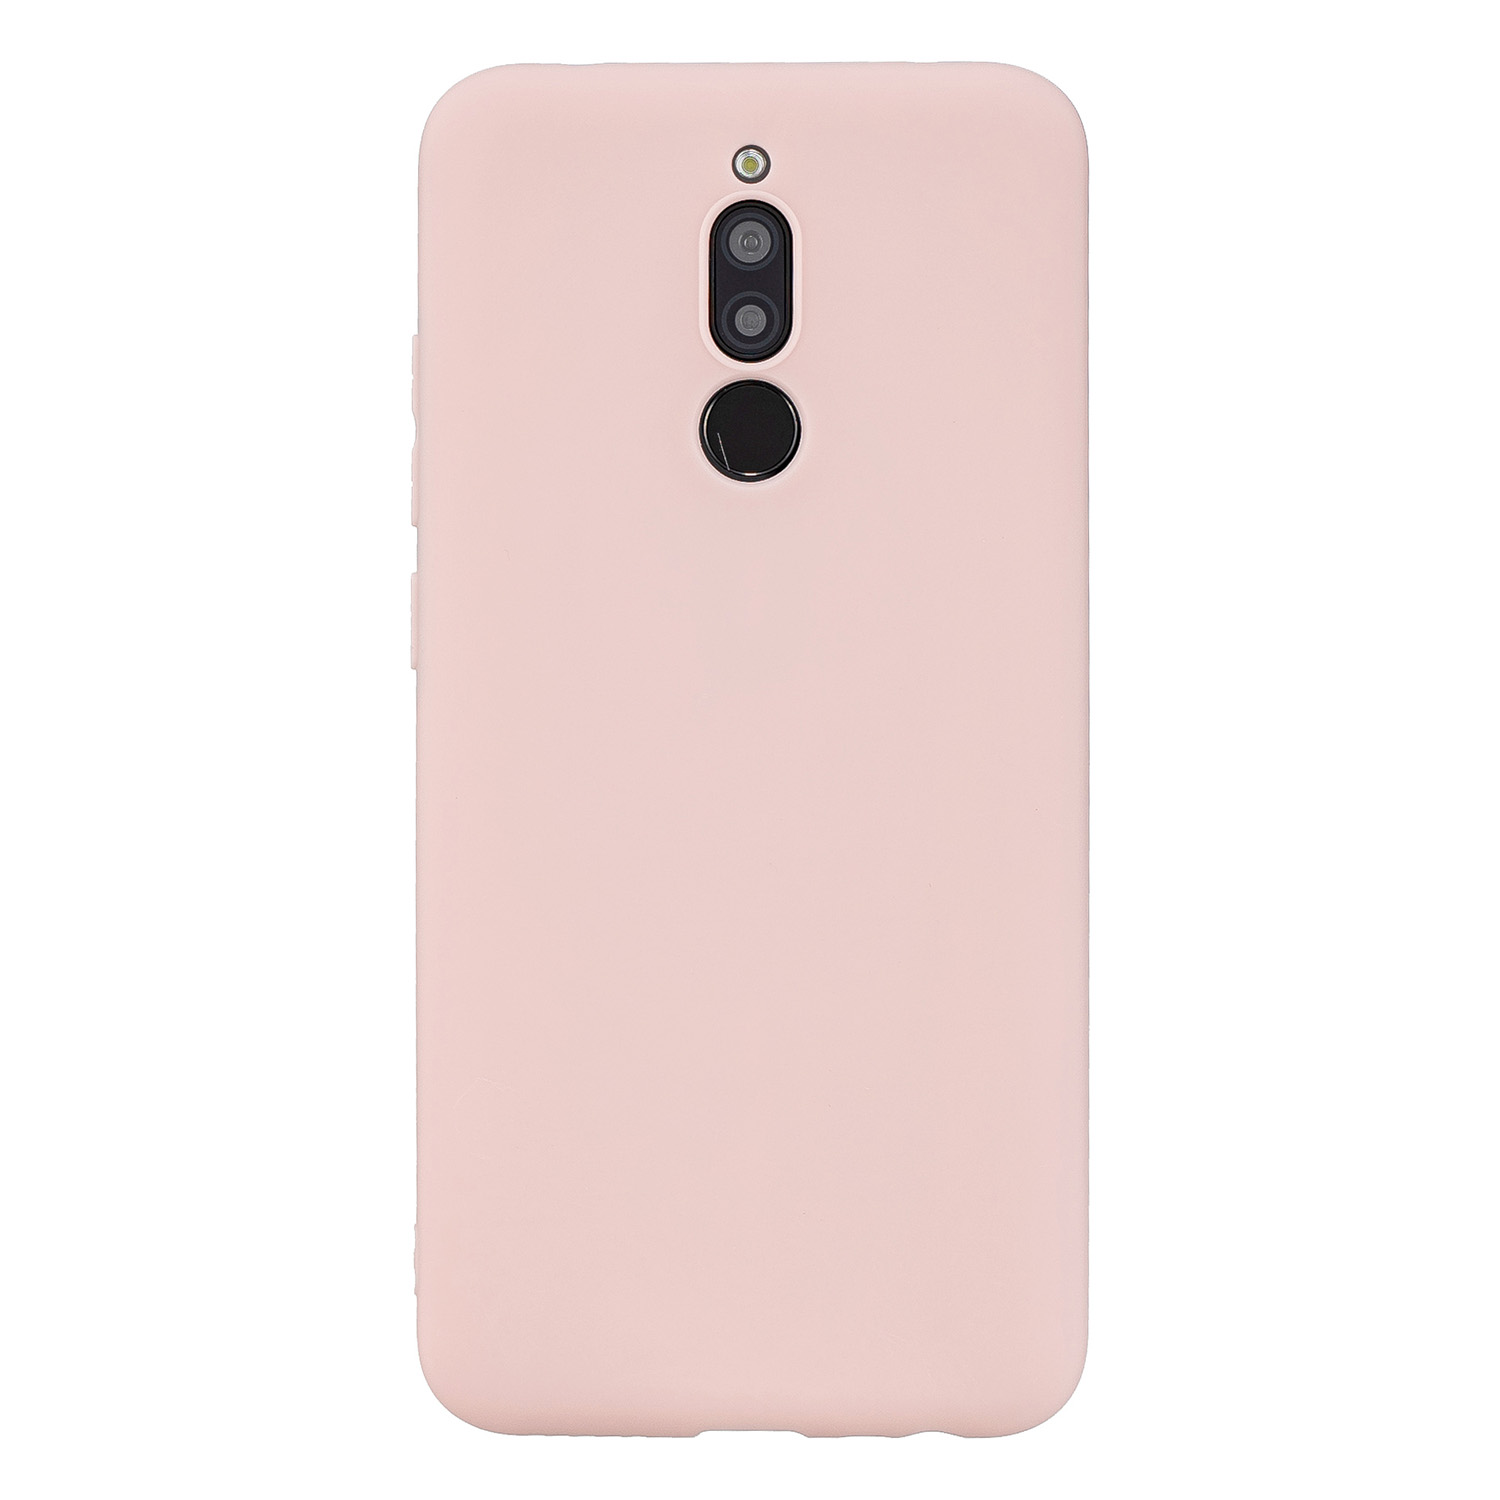 For Redmi 8 8A note 8T TPU Back Cover Soft Candy Color Frosted Surface Shockproof TPU Mobile Phone Protective Case 6